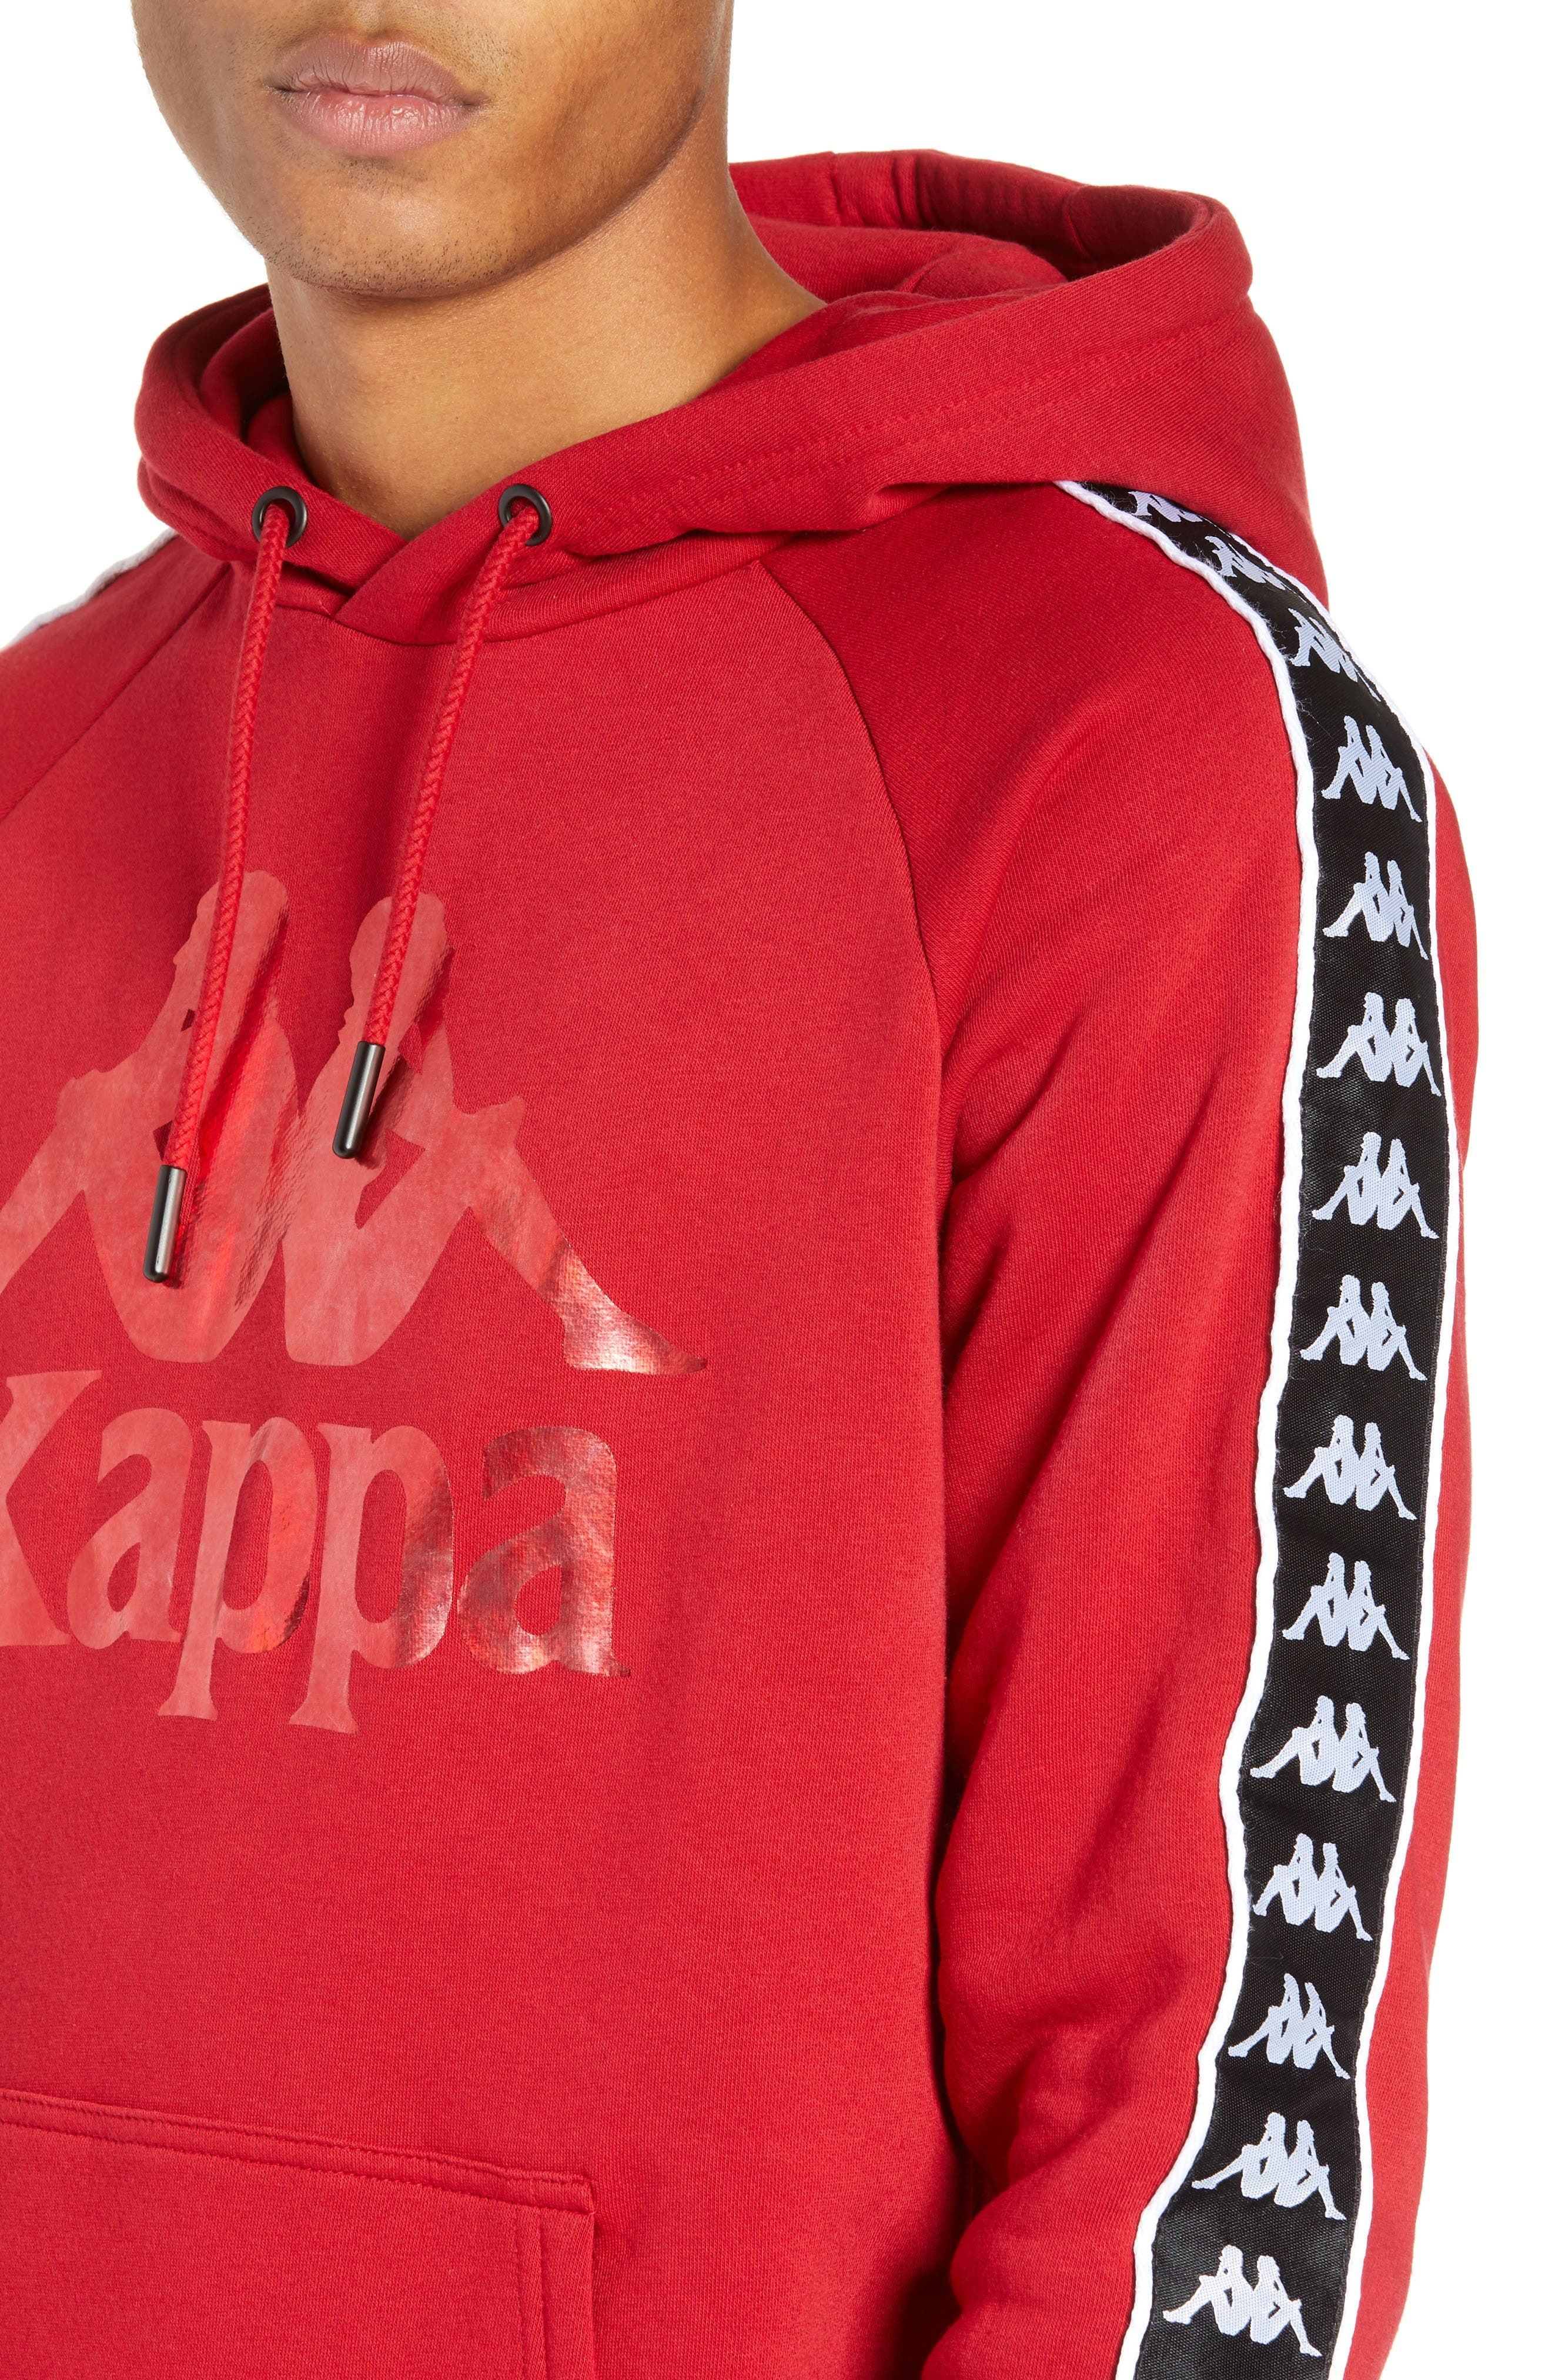 Banda Graphic Hoodie,                             Alternate thumbnail 4, color,                             RED/ BLACK/ WHITE